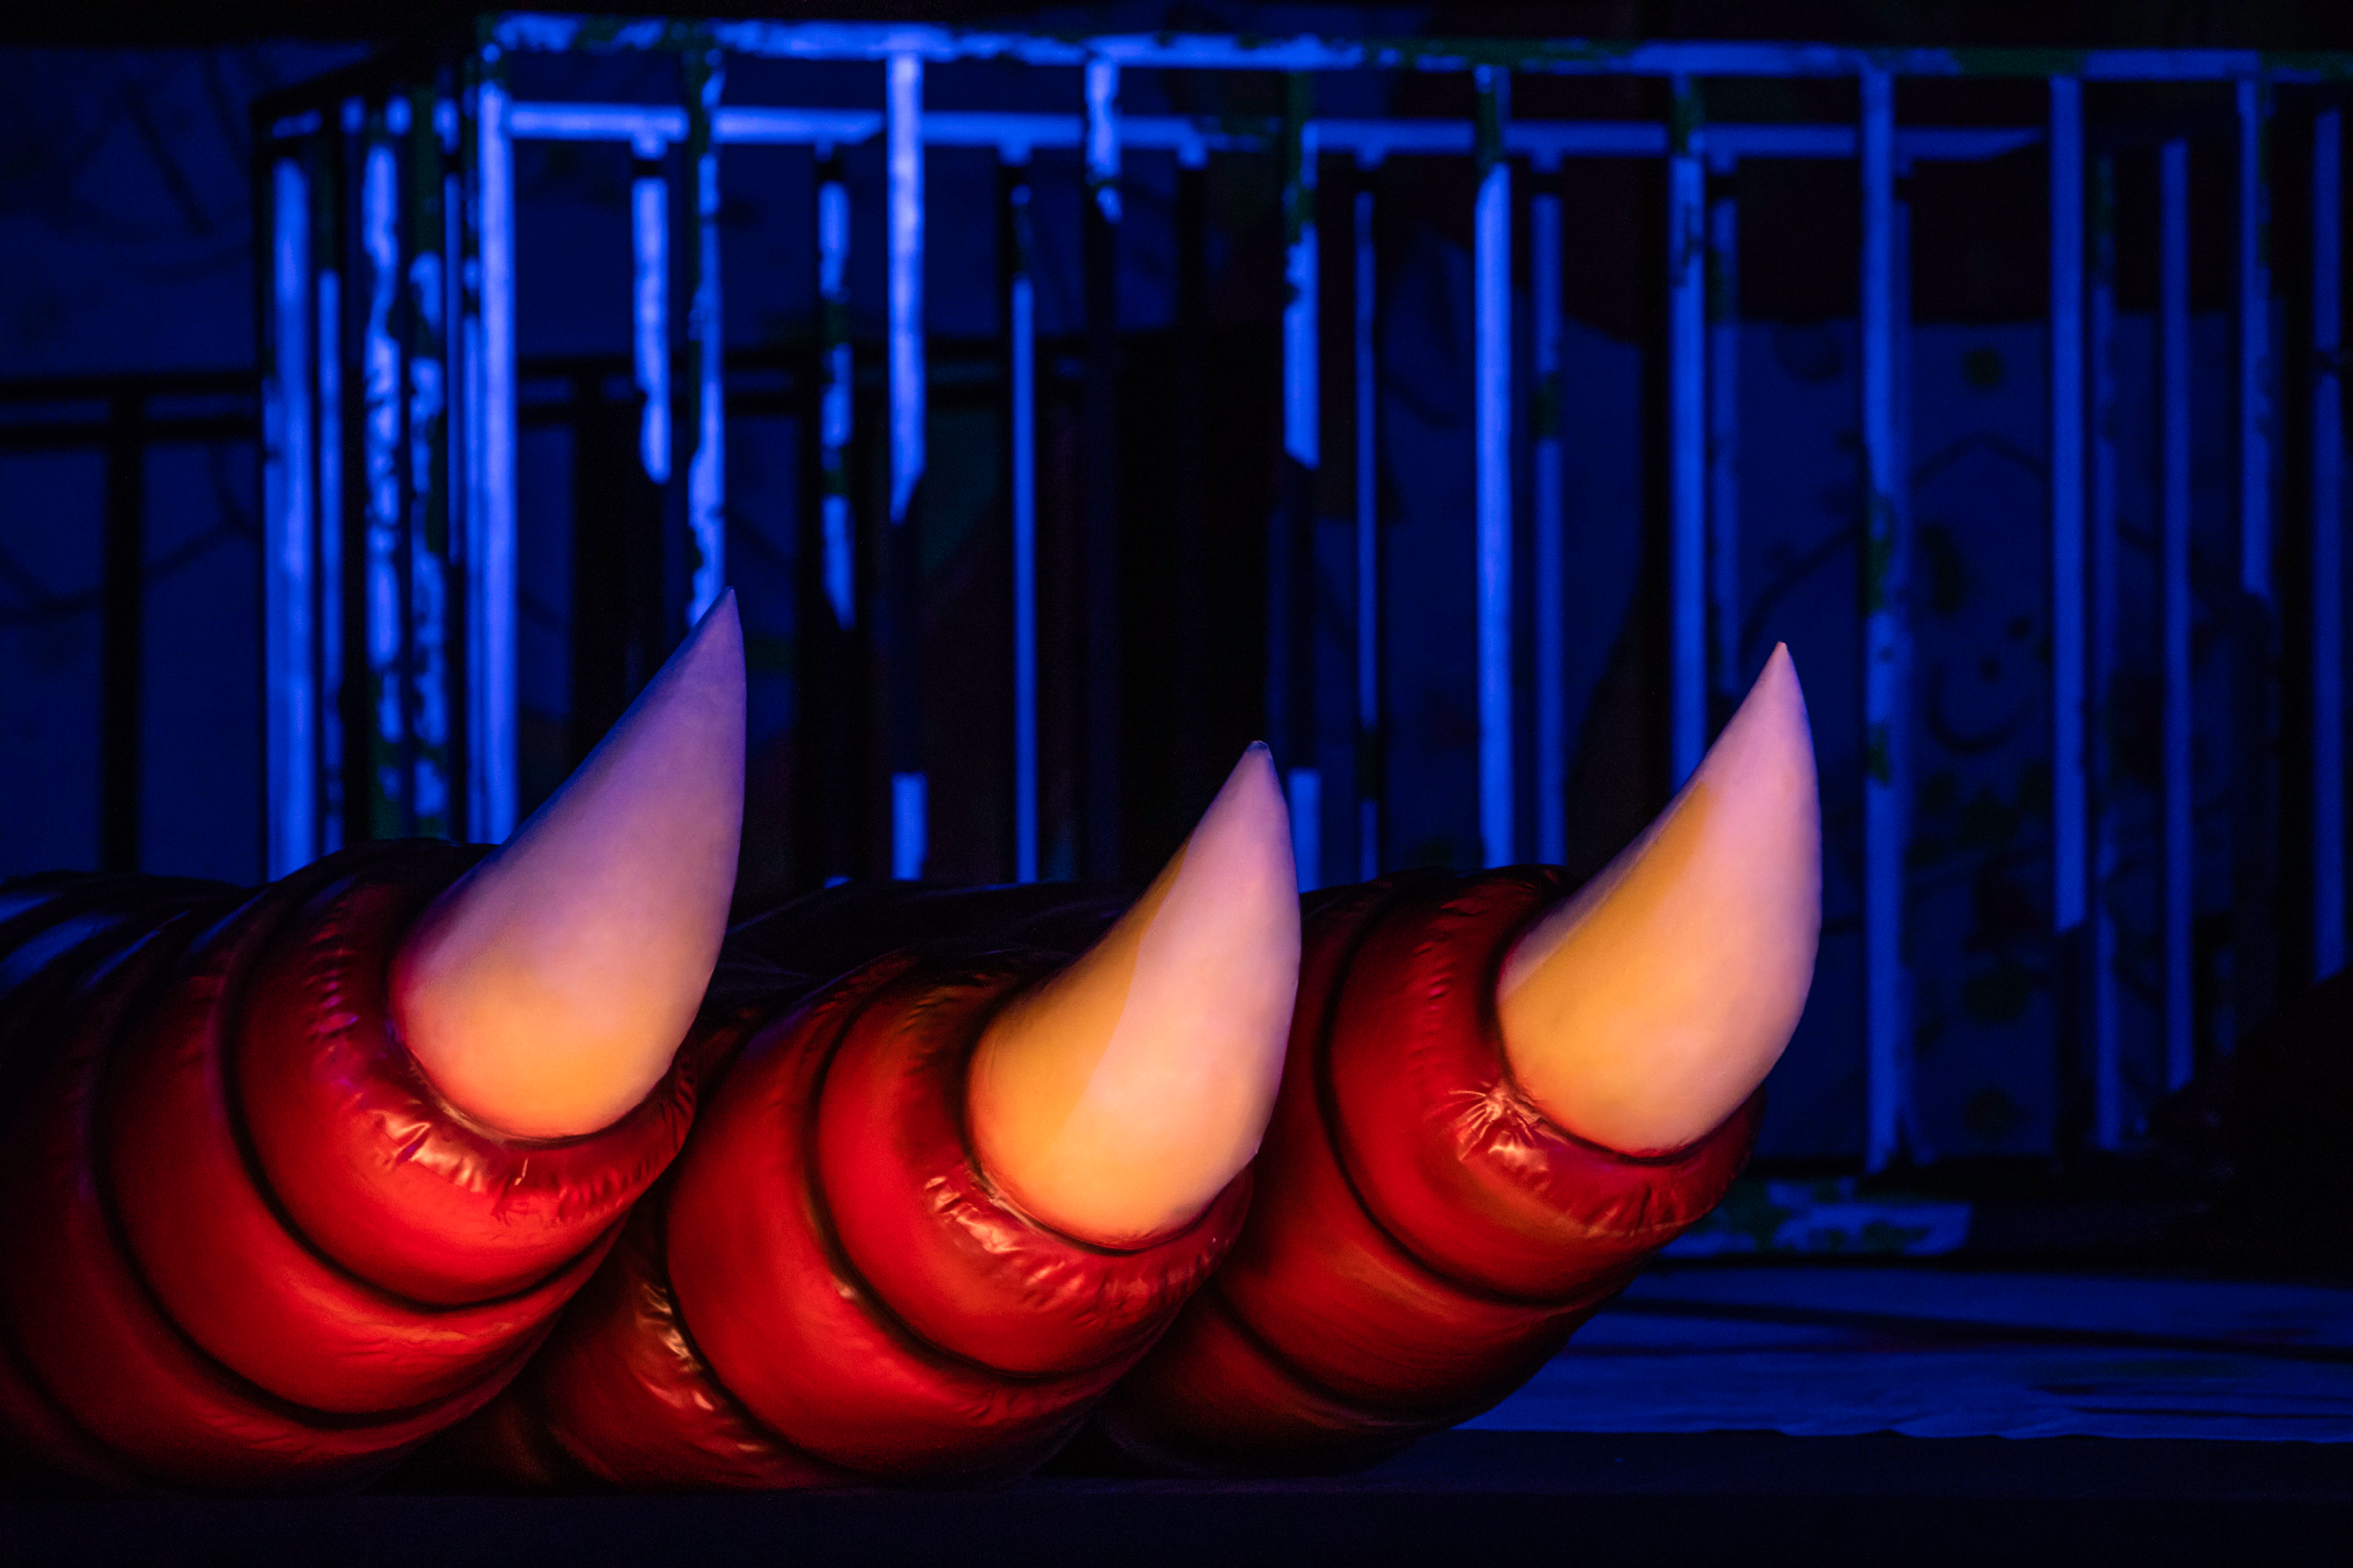 Red dragon claw reaching under stage curtain